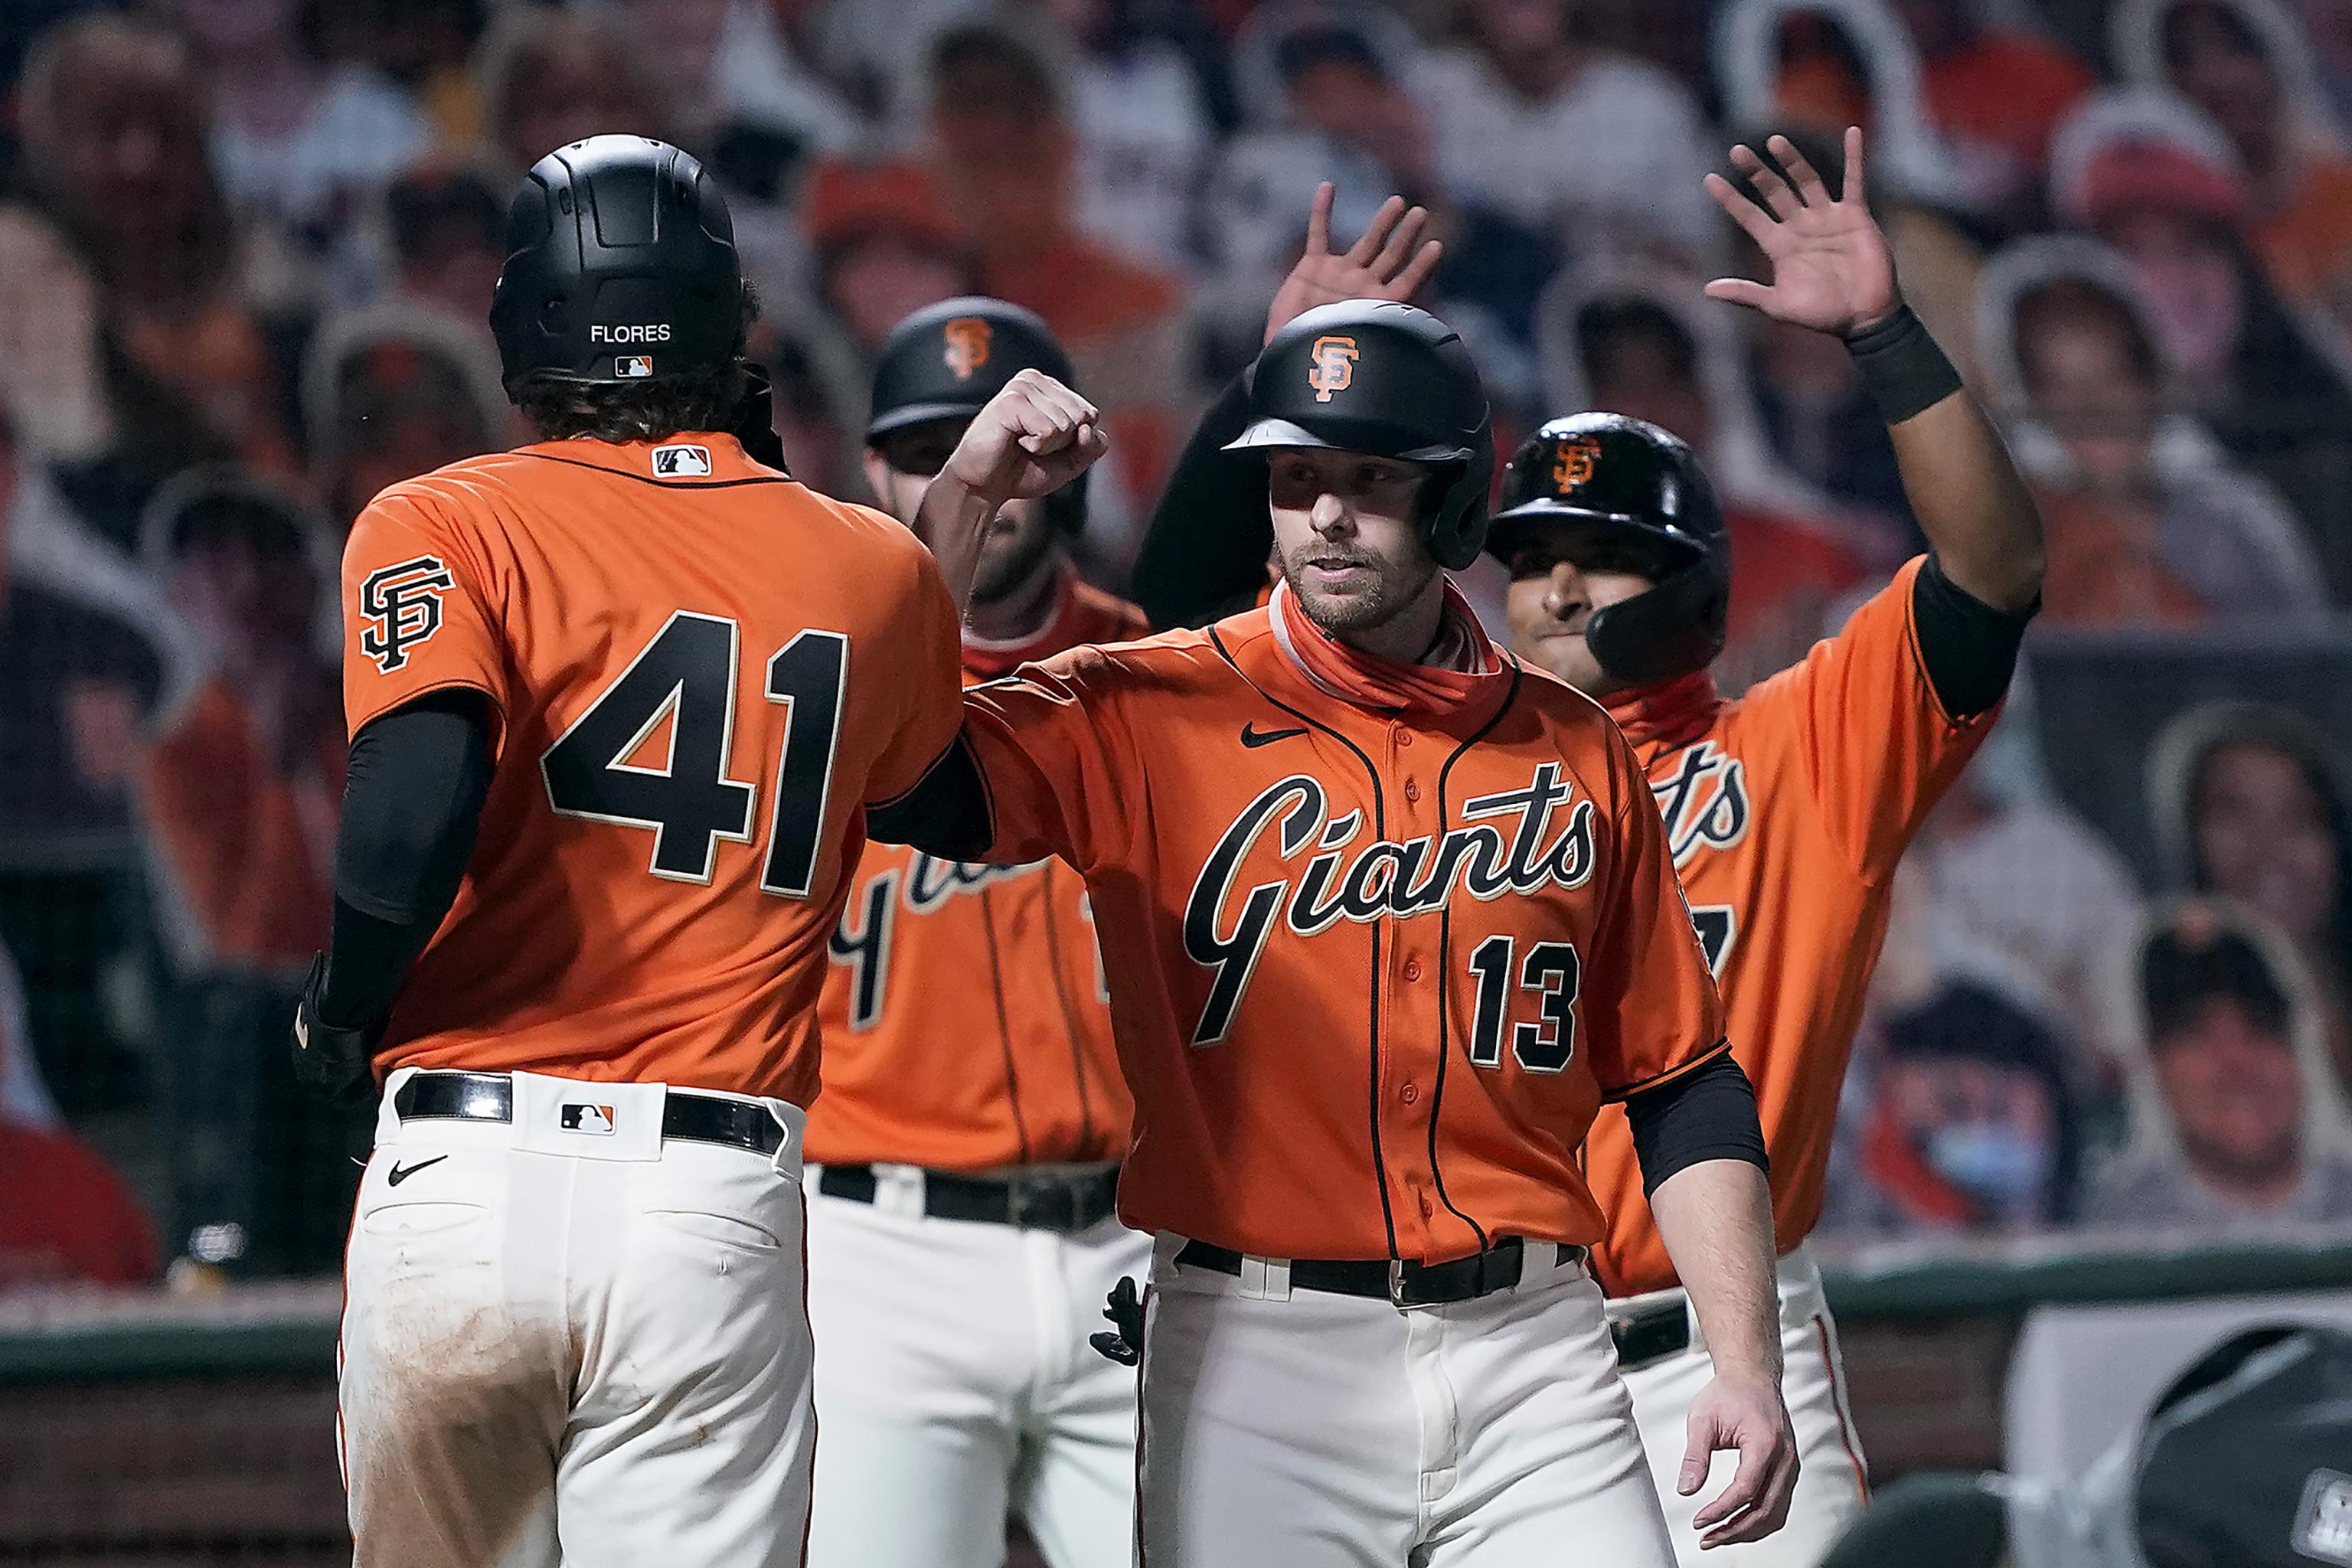 Mlb Playoff Bracket 2020 Viewing Schedule And Latest Postseason Picture Bleacher Report Latest News Videos And Highlights